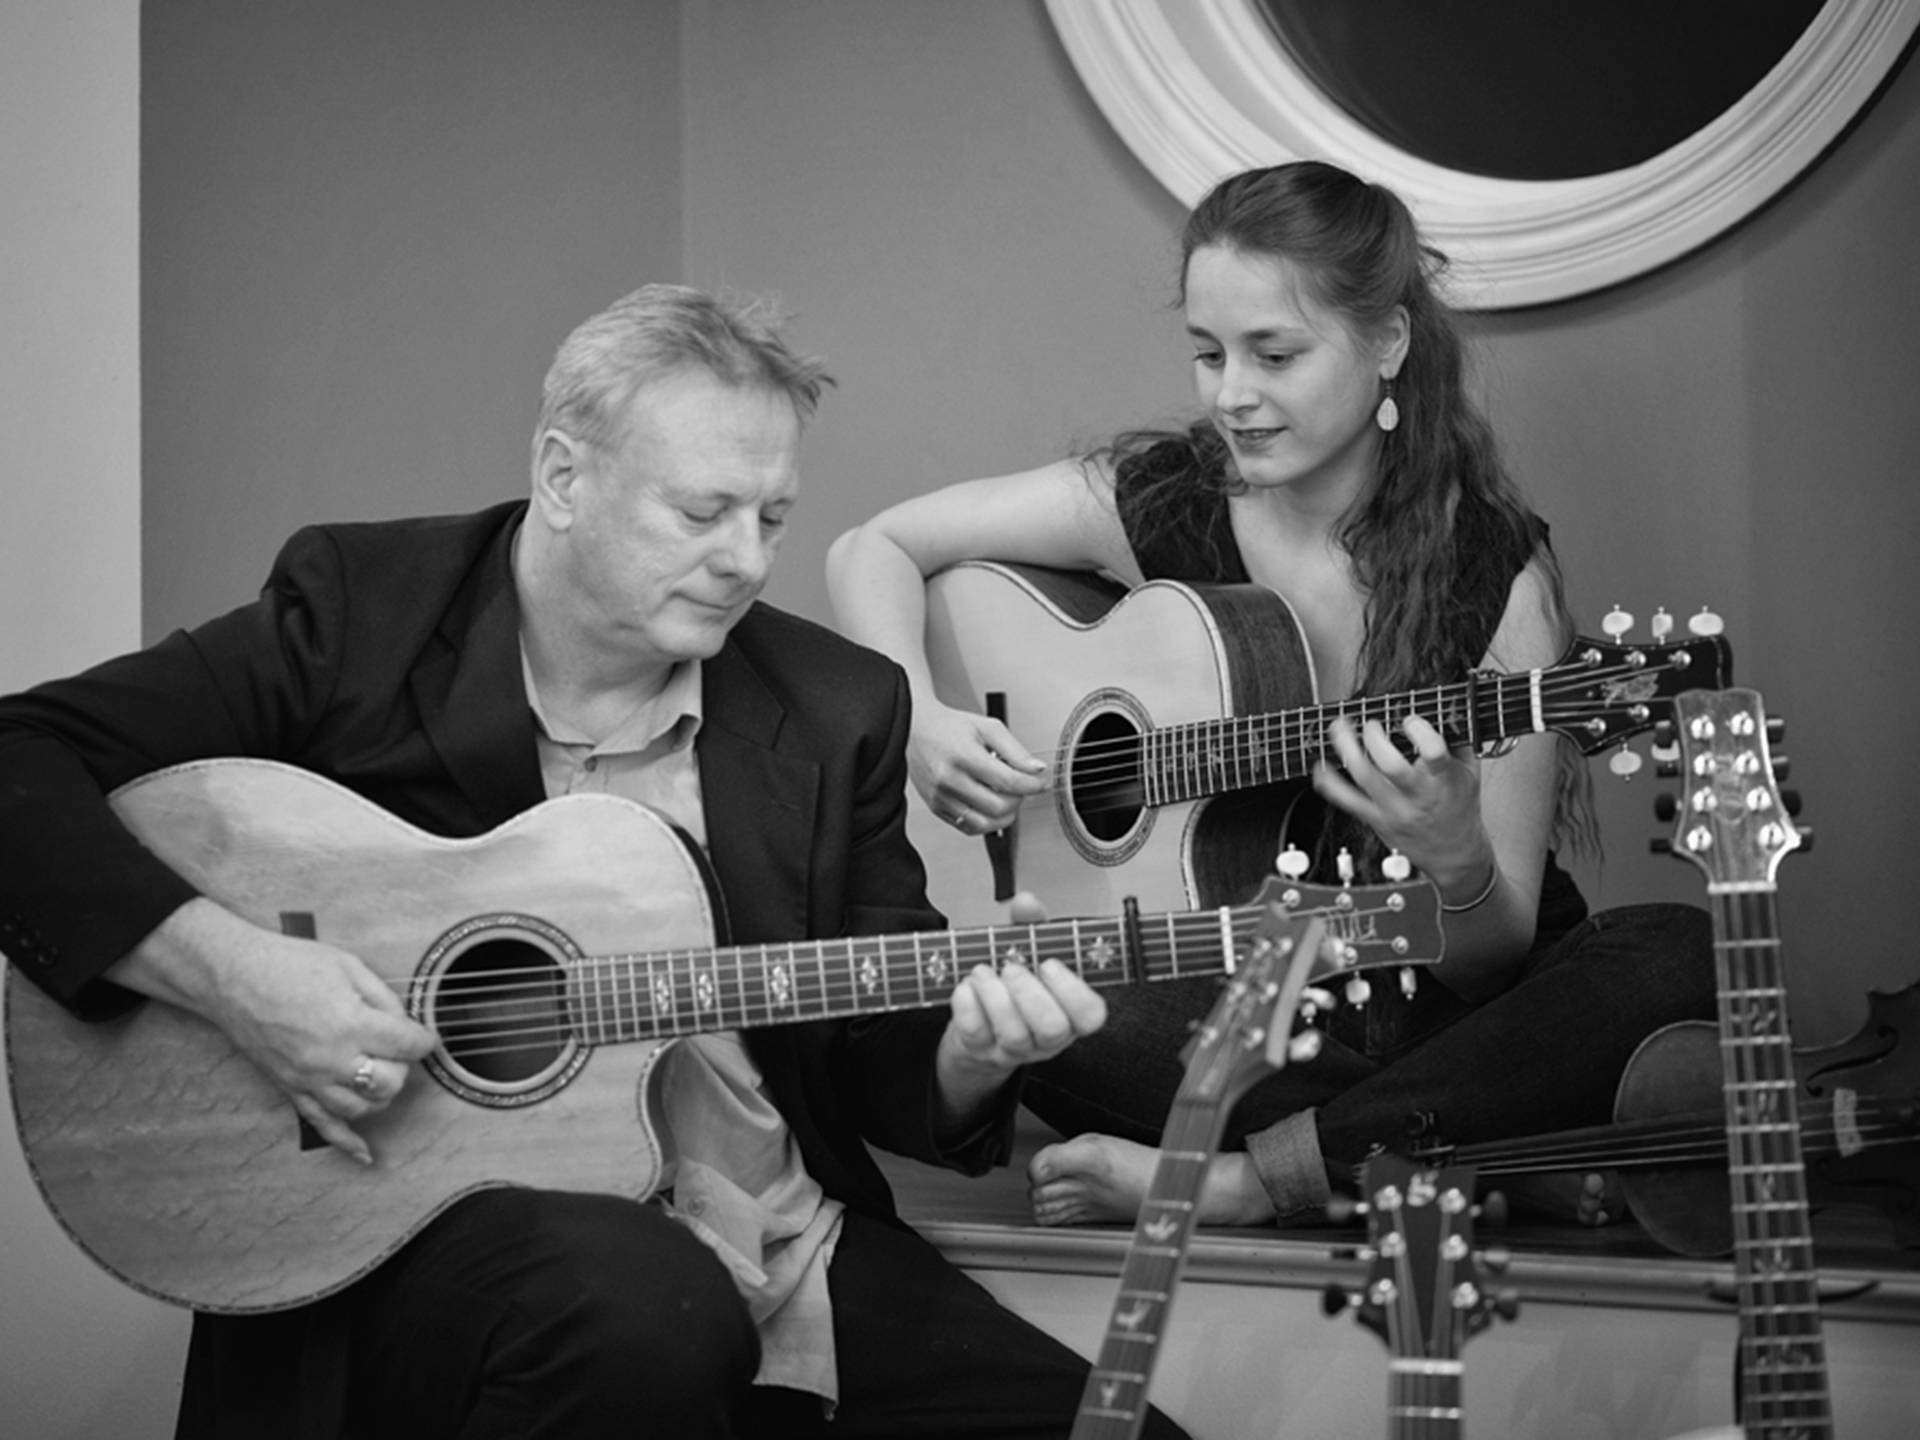 Tony McManus & Julia Toaspern - Folk